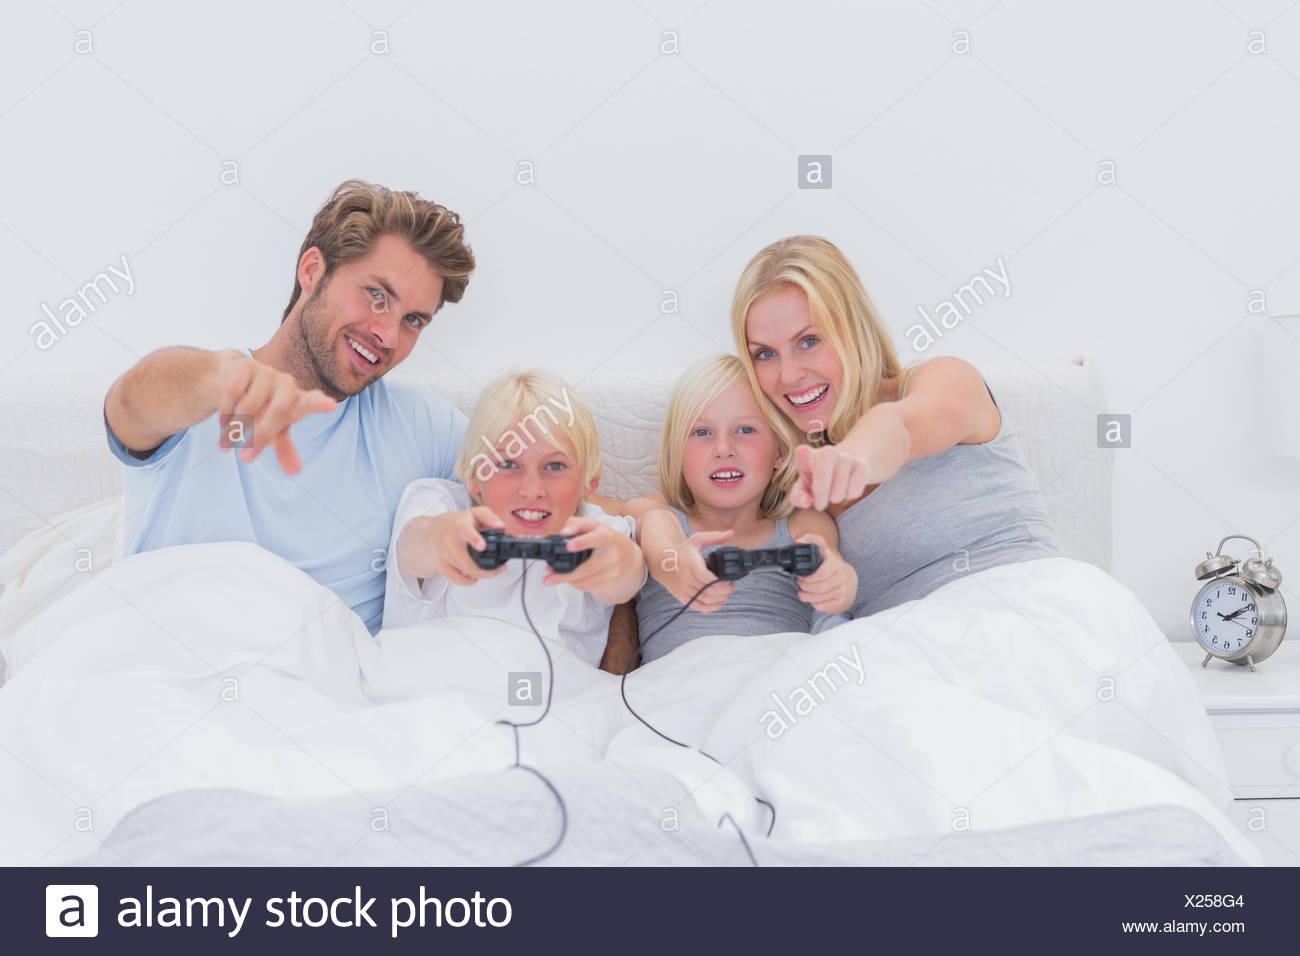 Happy family playing video games - Stock Image